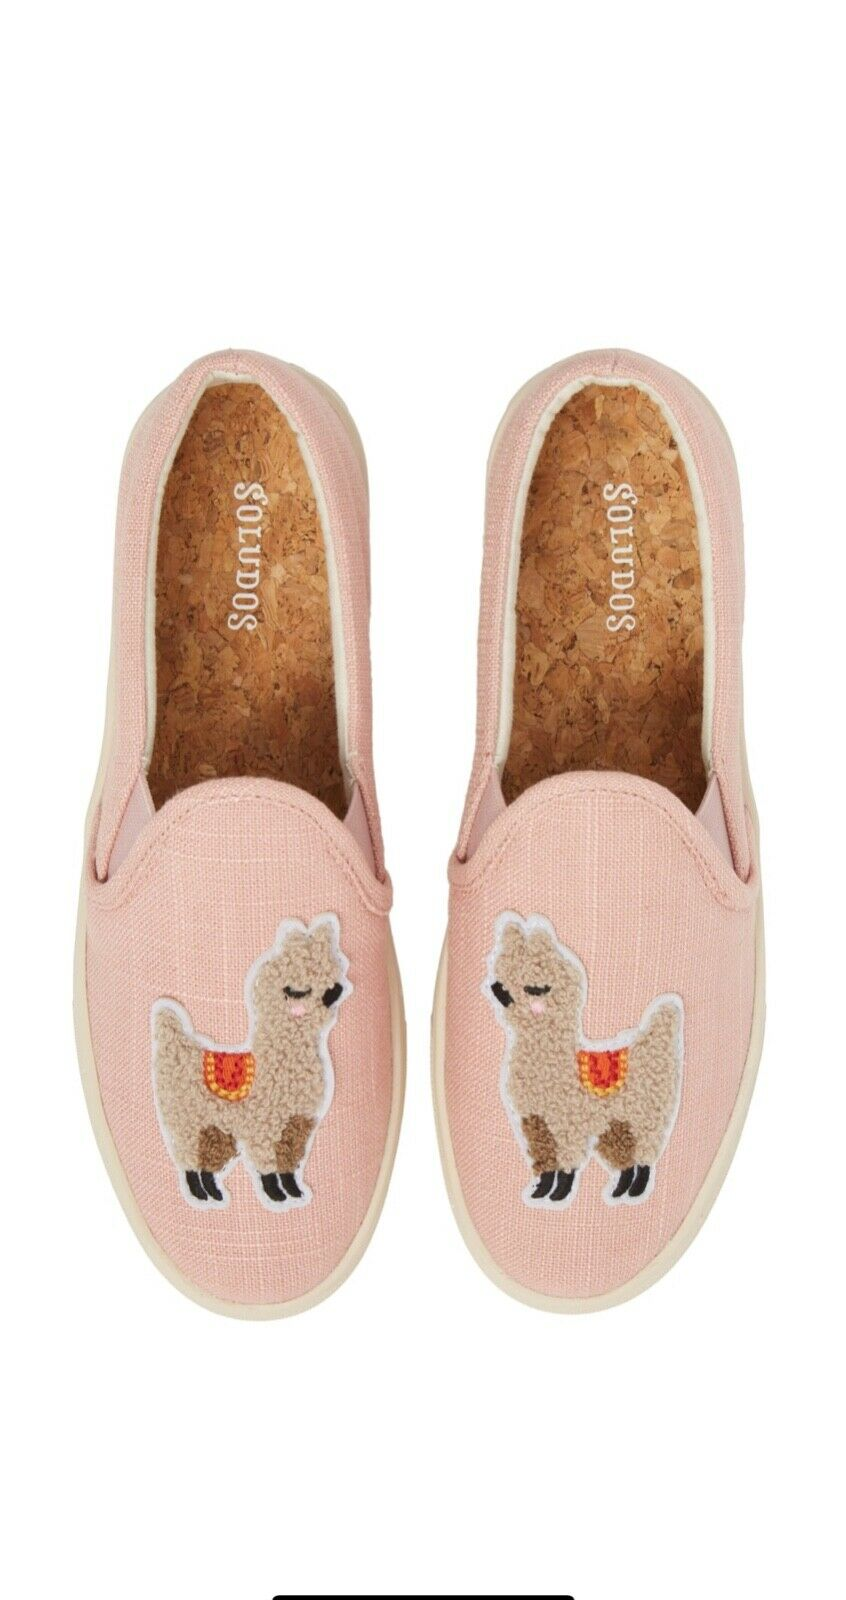 EXCLUSIVE design. Soludos Womens llama Slip-on Sneakers - Size 7 (NEW )